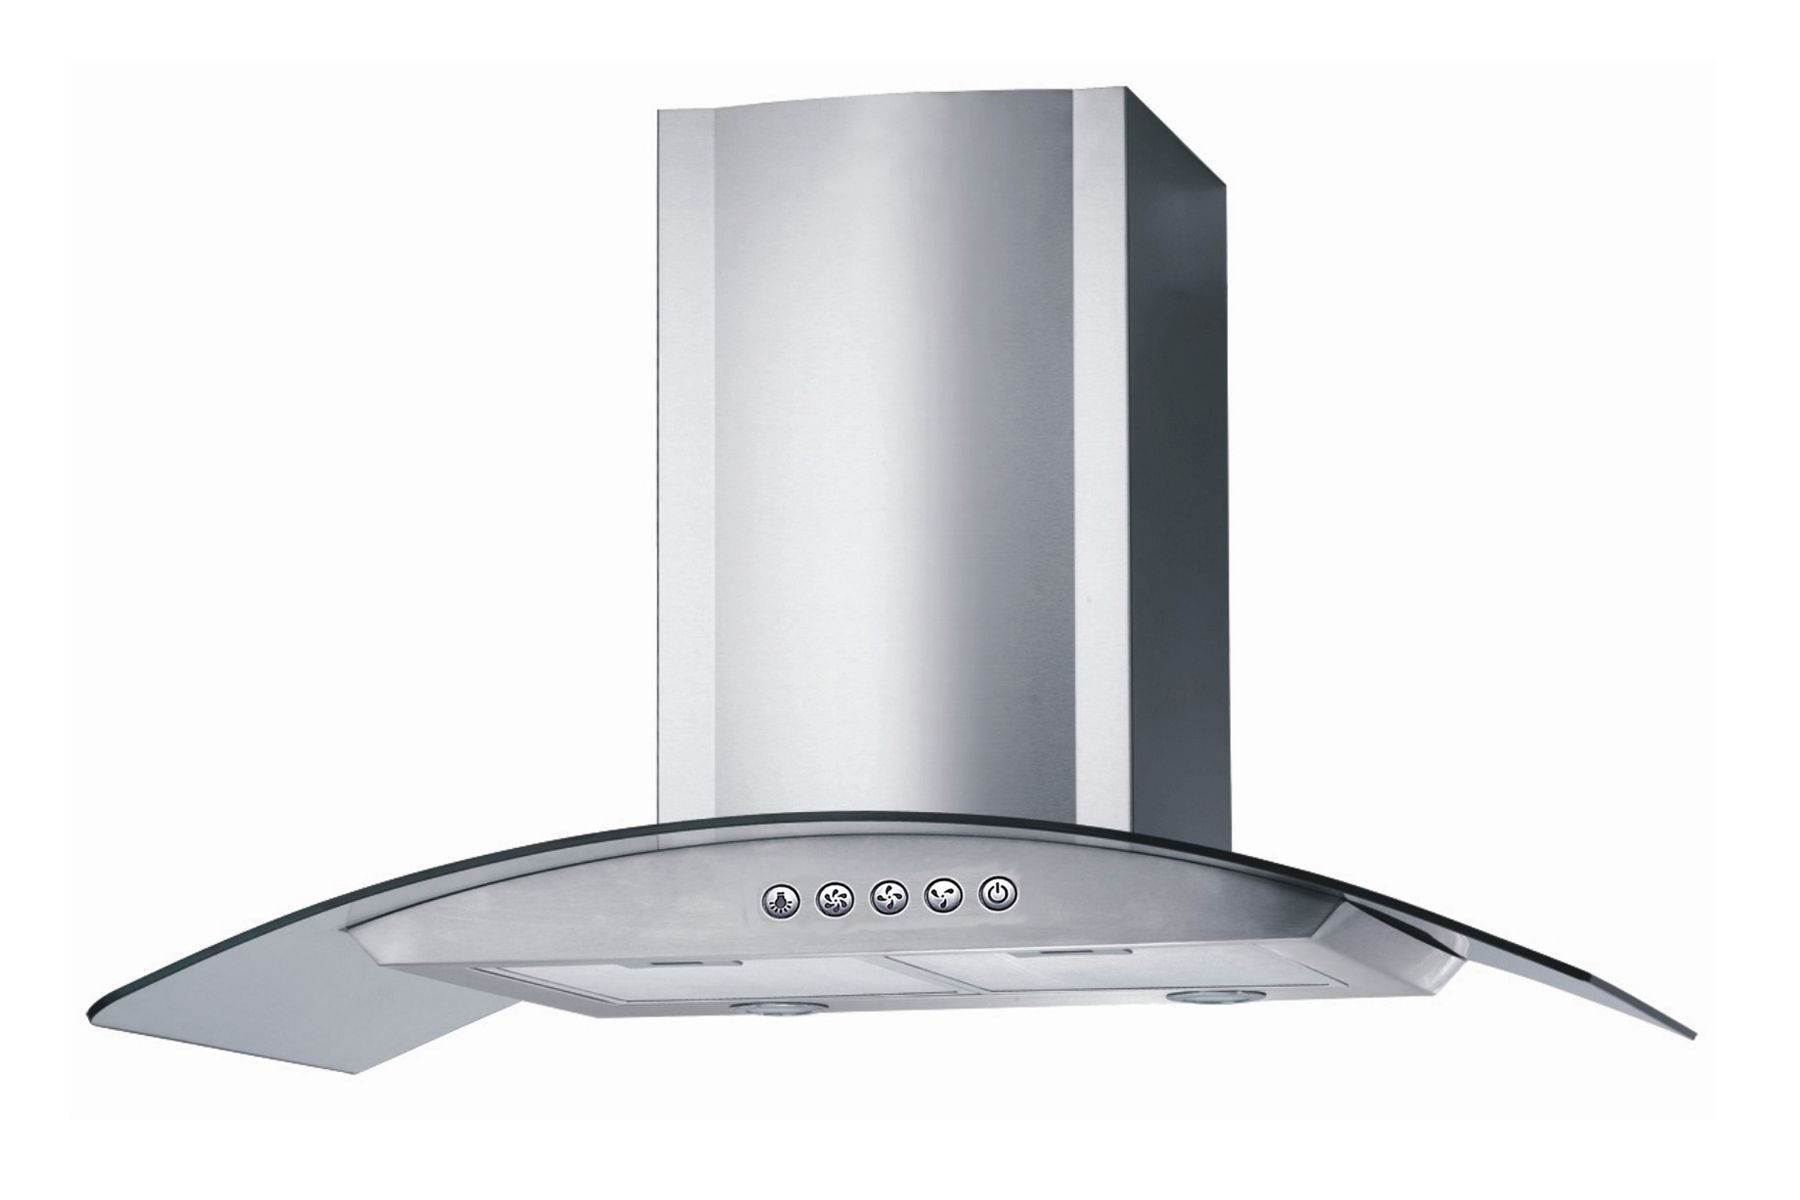 30 Wall Mount Stainless Steel Range Hood Free Charcoal Filter